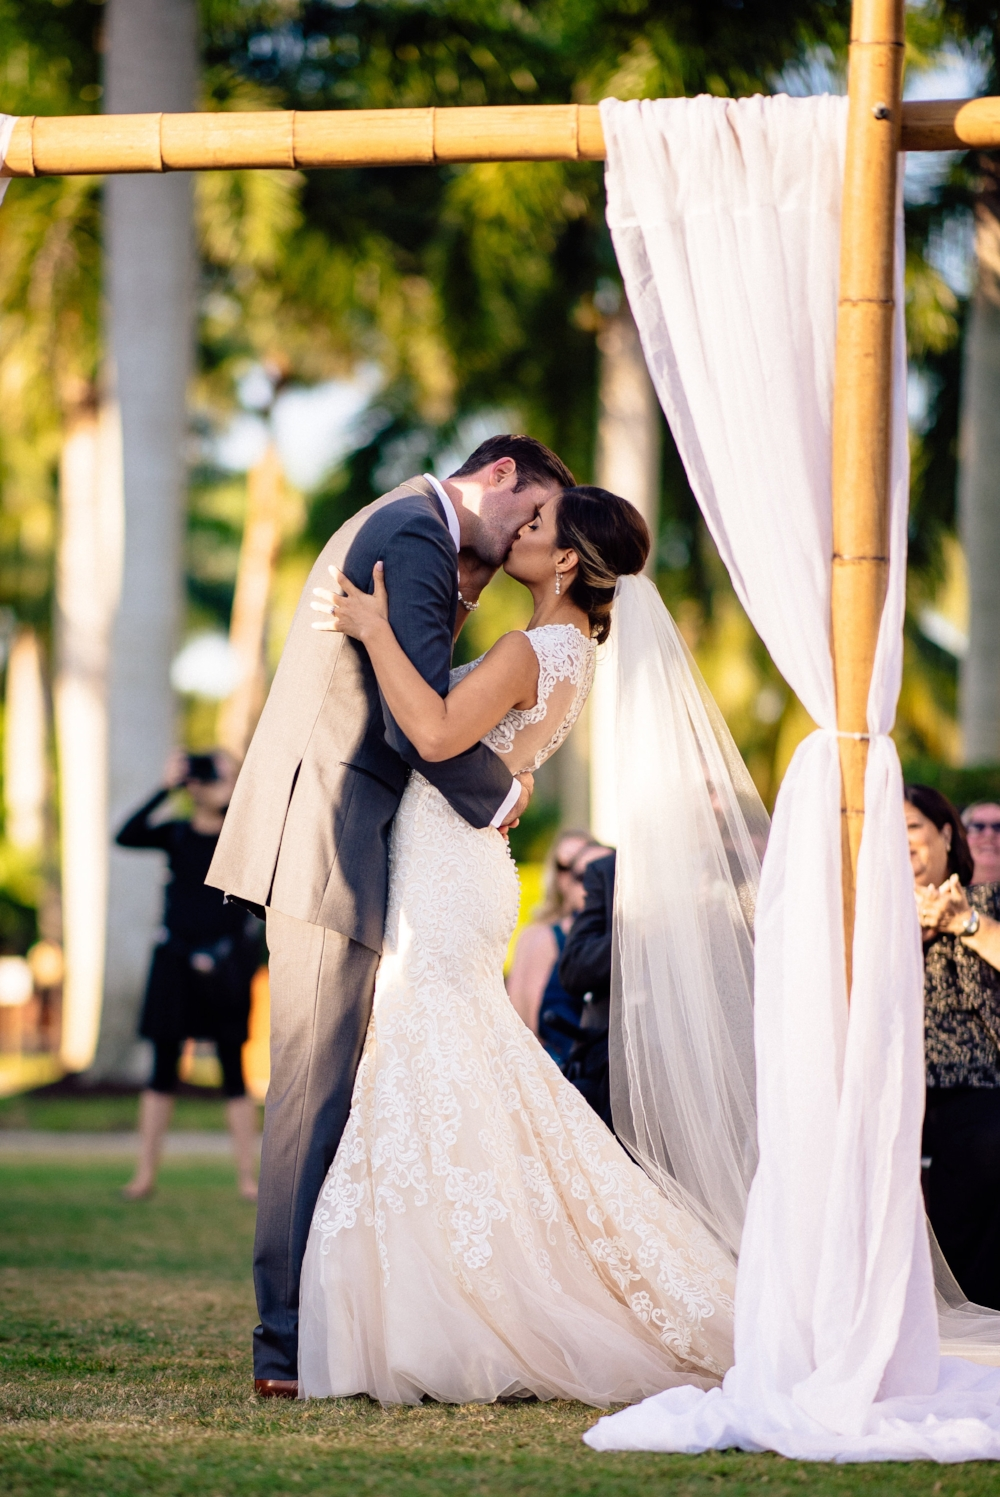 Wedding Ceremony Hyatt Regency Coconut Point Bonita Springs Florida Matt Steeves Photography 10.jpg